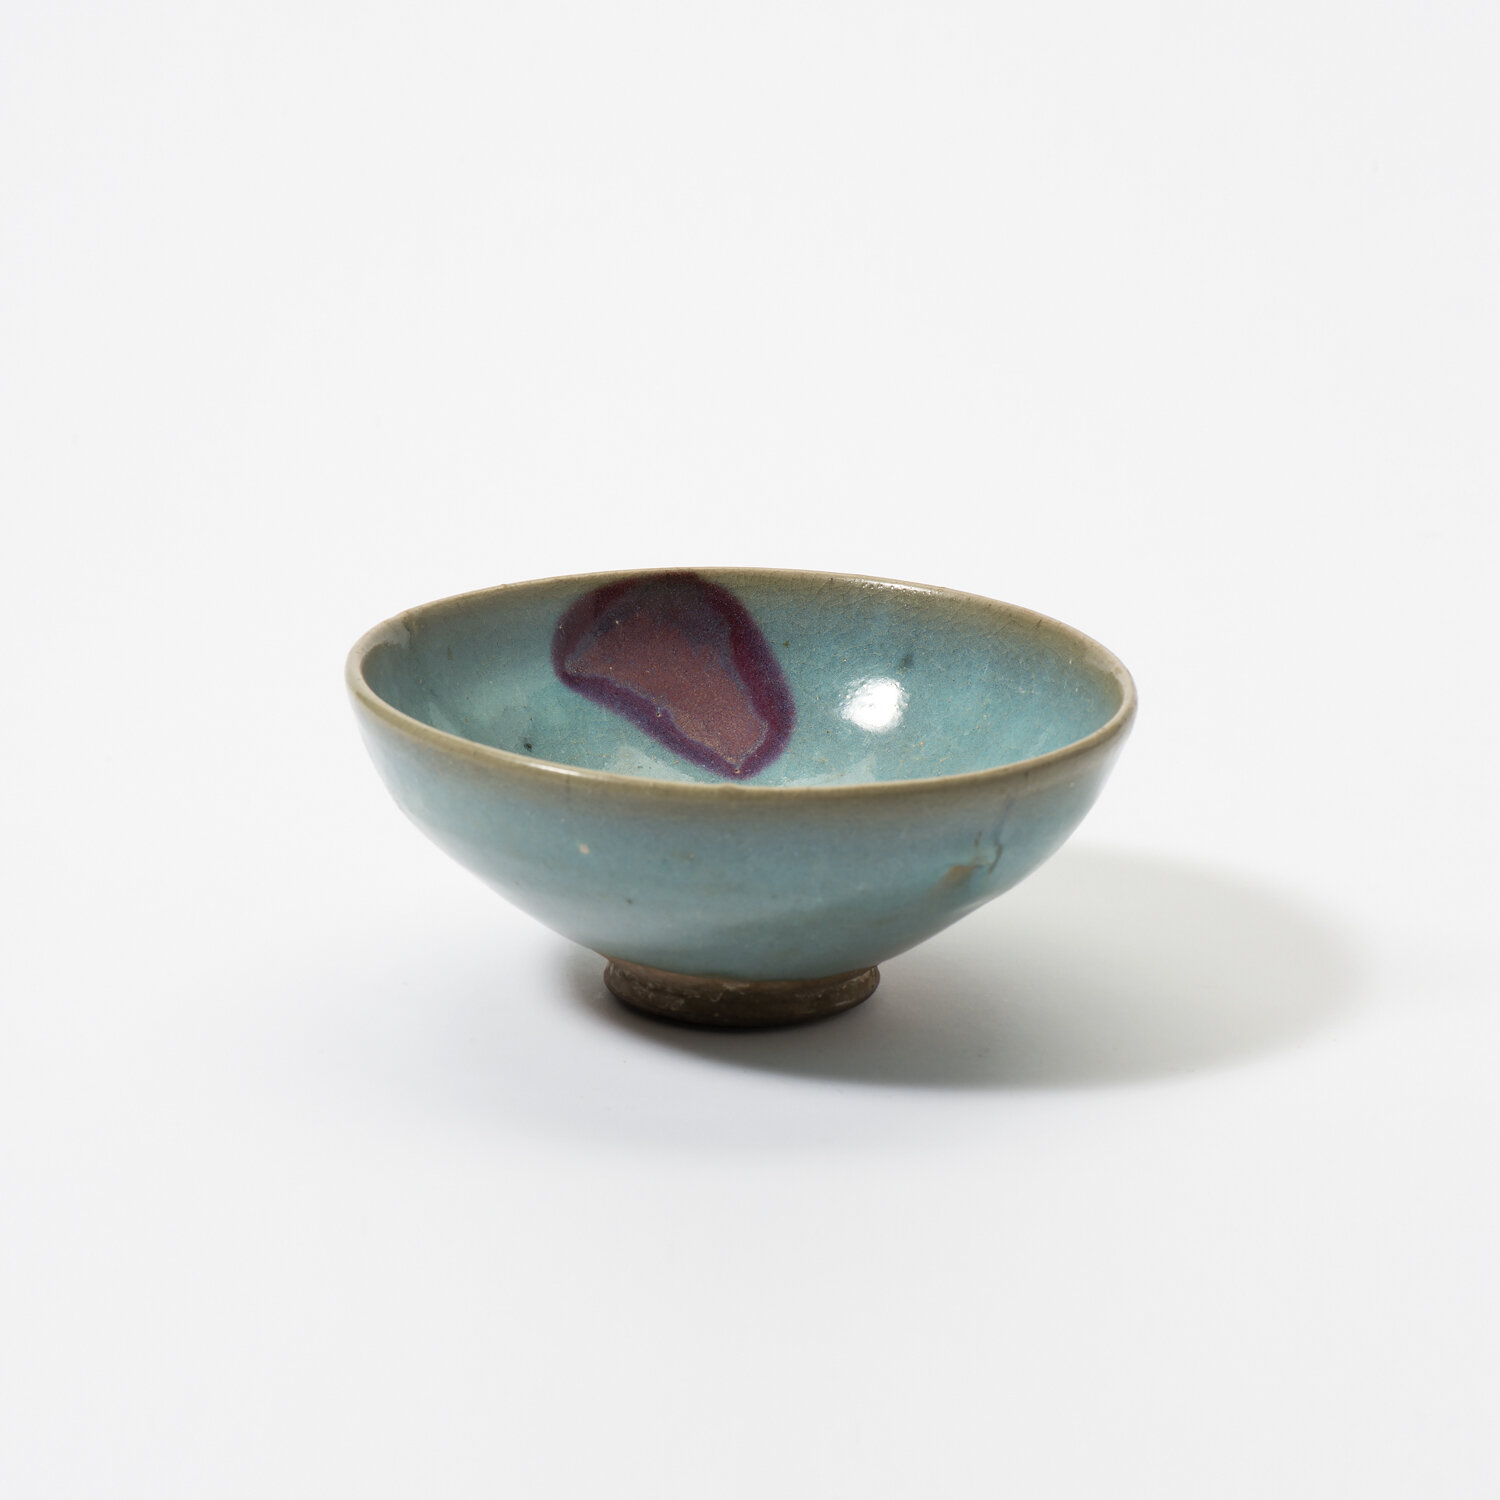 A Chinese Junyao purple-splashed bowl, Yuan dynasty (1271-1368)